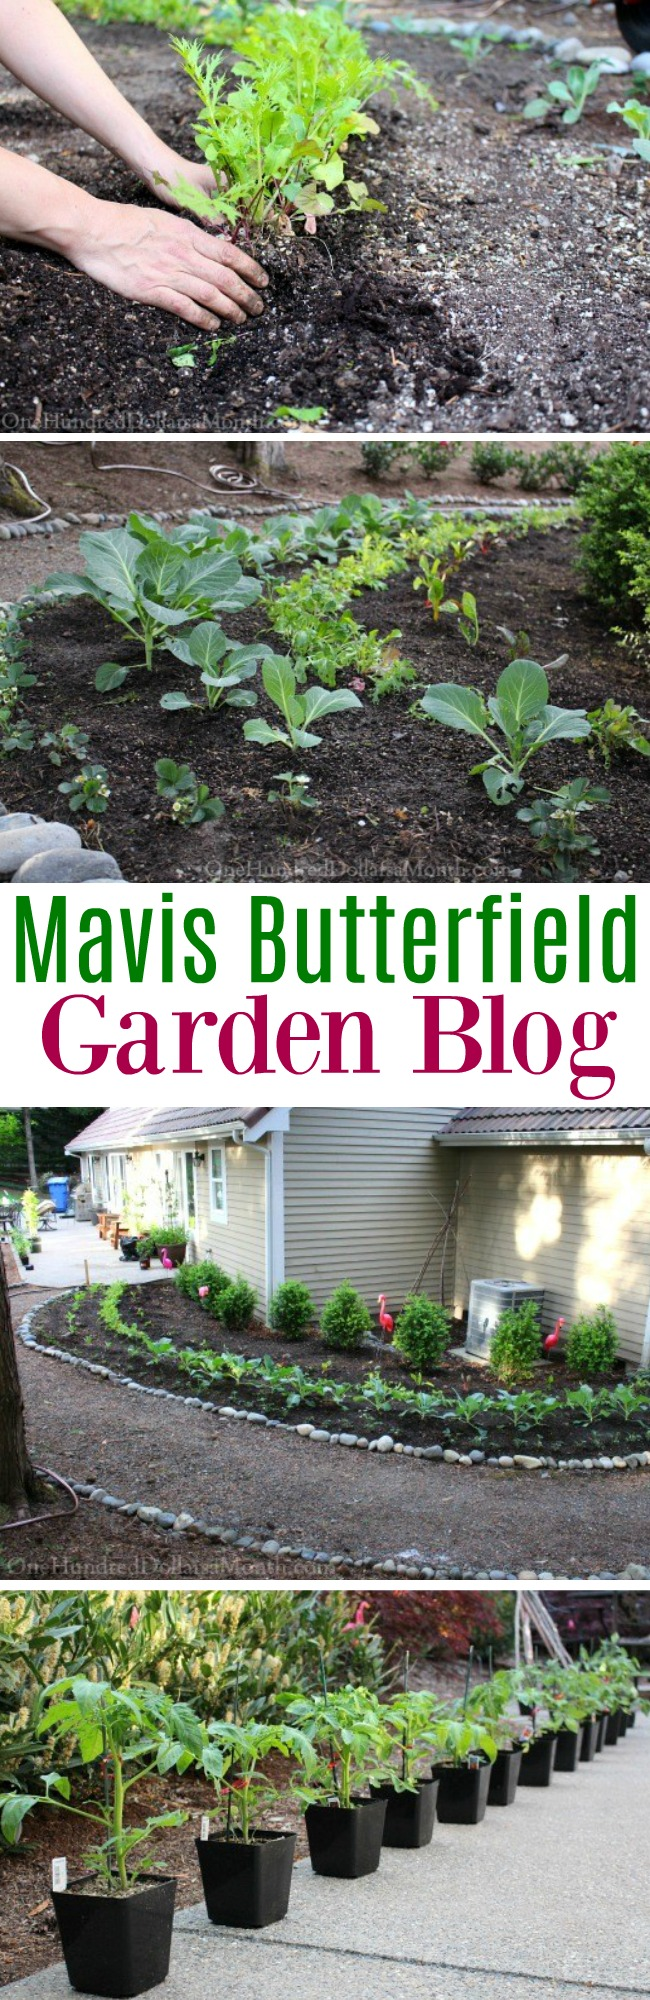 Mavis Butterfield | Backyard Garden Plot Pictures 5/10/15